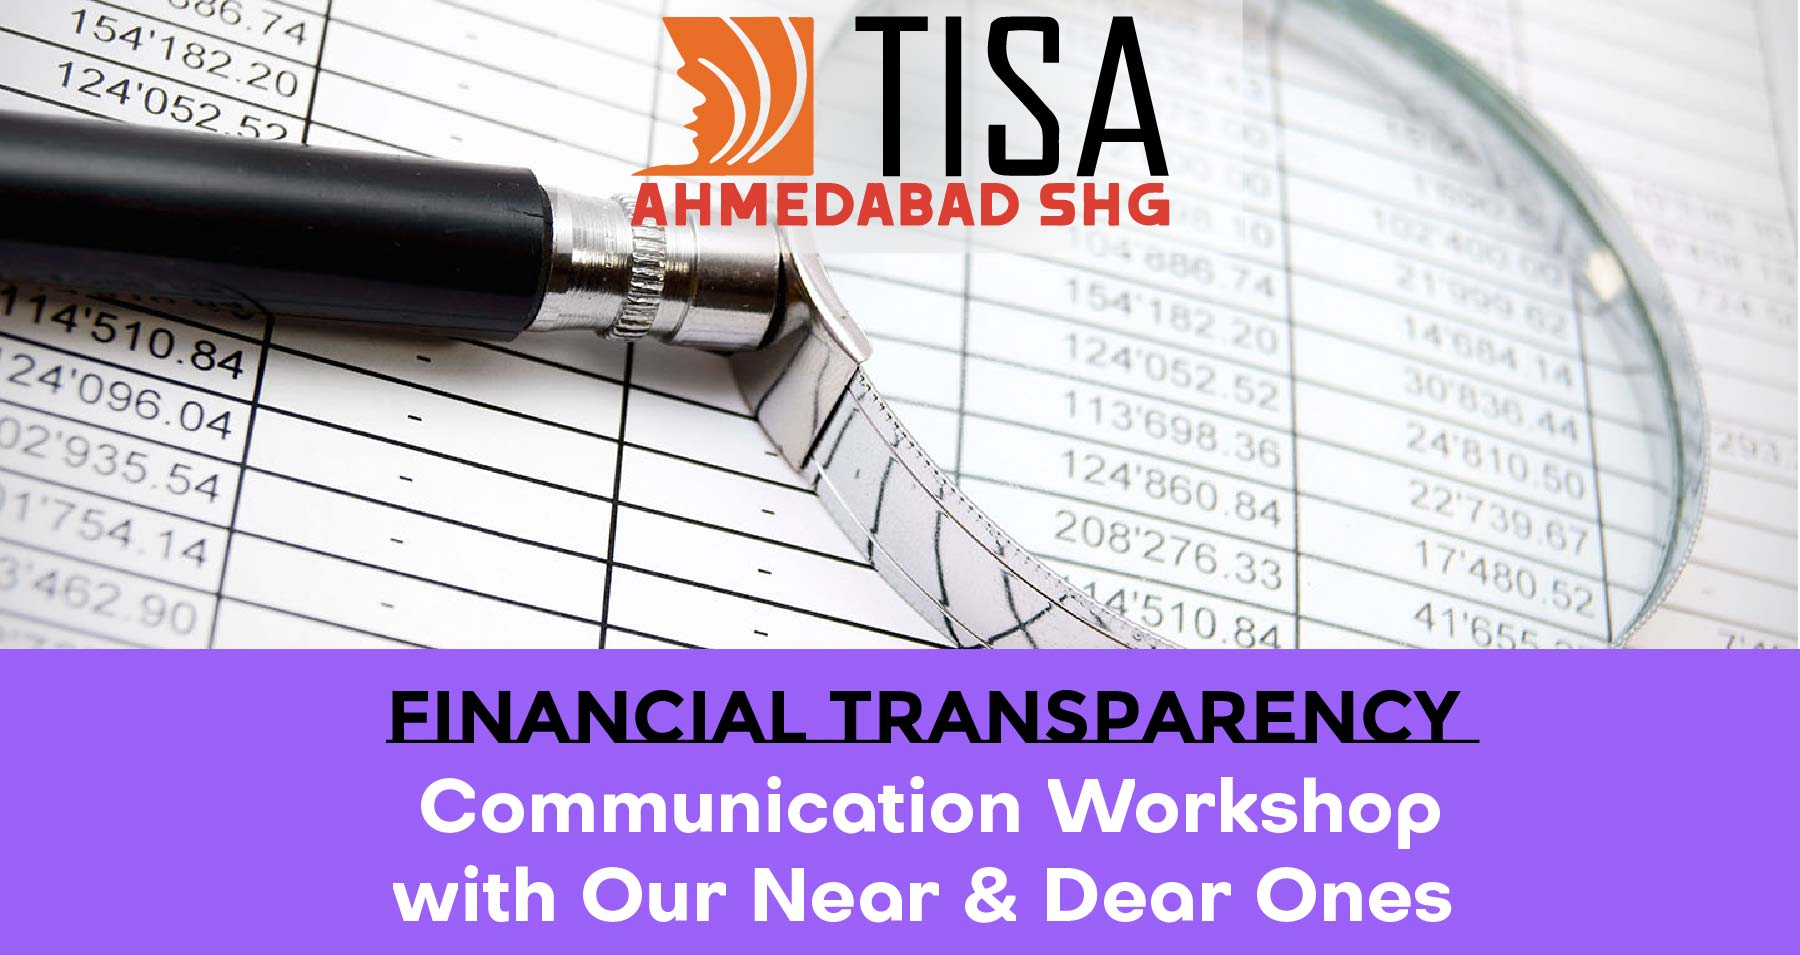 Financial Transparency of Communication Workshop with Our Near & Dear Ones